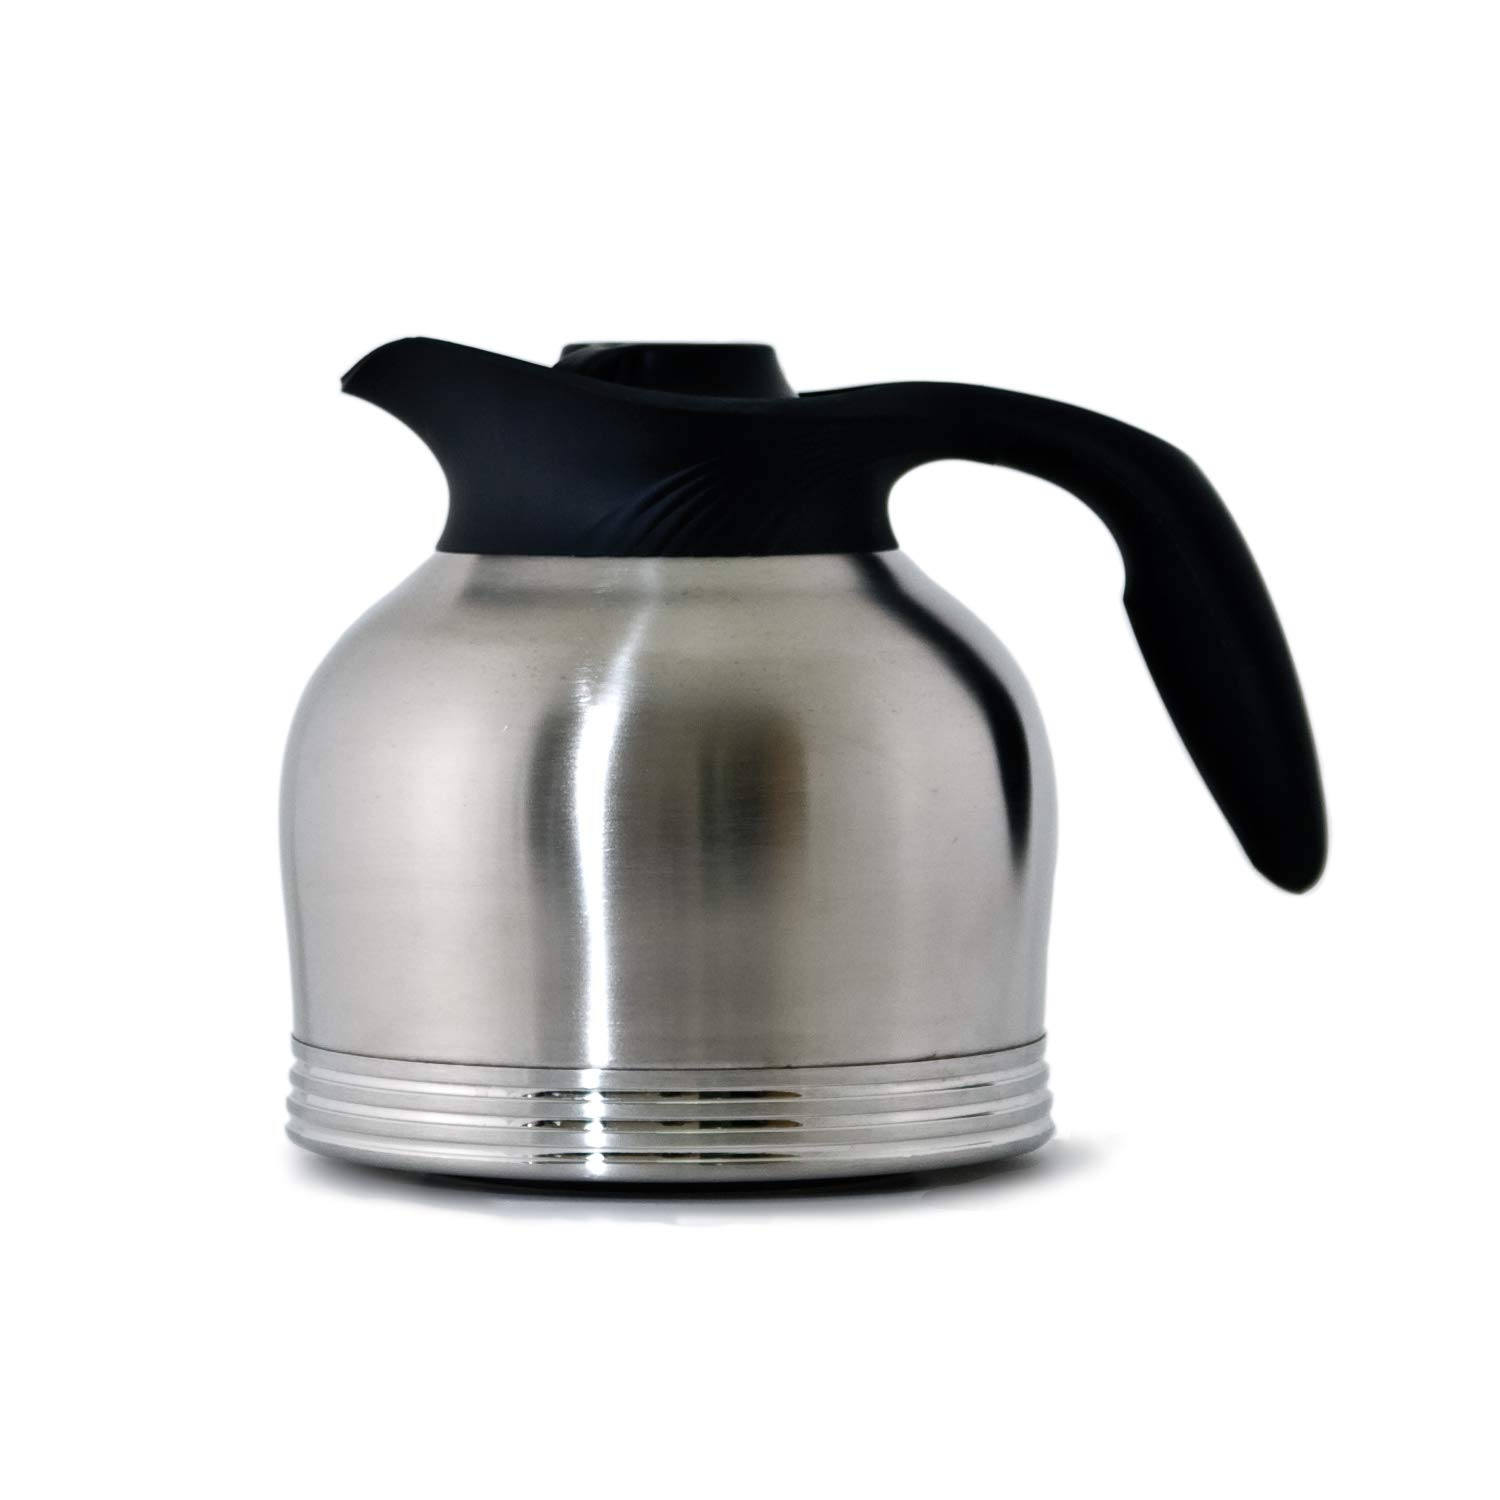 【海外輸入】 Stanley Brew-In Ergoserv 1.9-Litre Carafe Brew-In Carafe Stanley (Low) B001Q3LA04, ANCHOR SELECT:3356f631 --- staging.aidandore.com